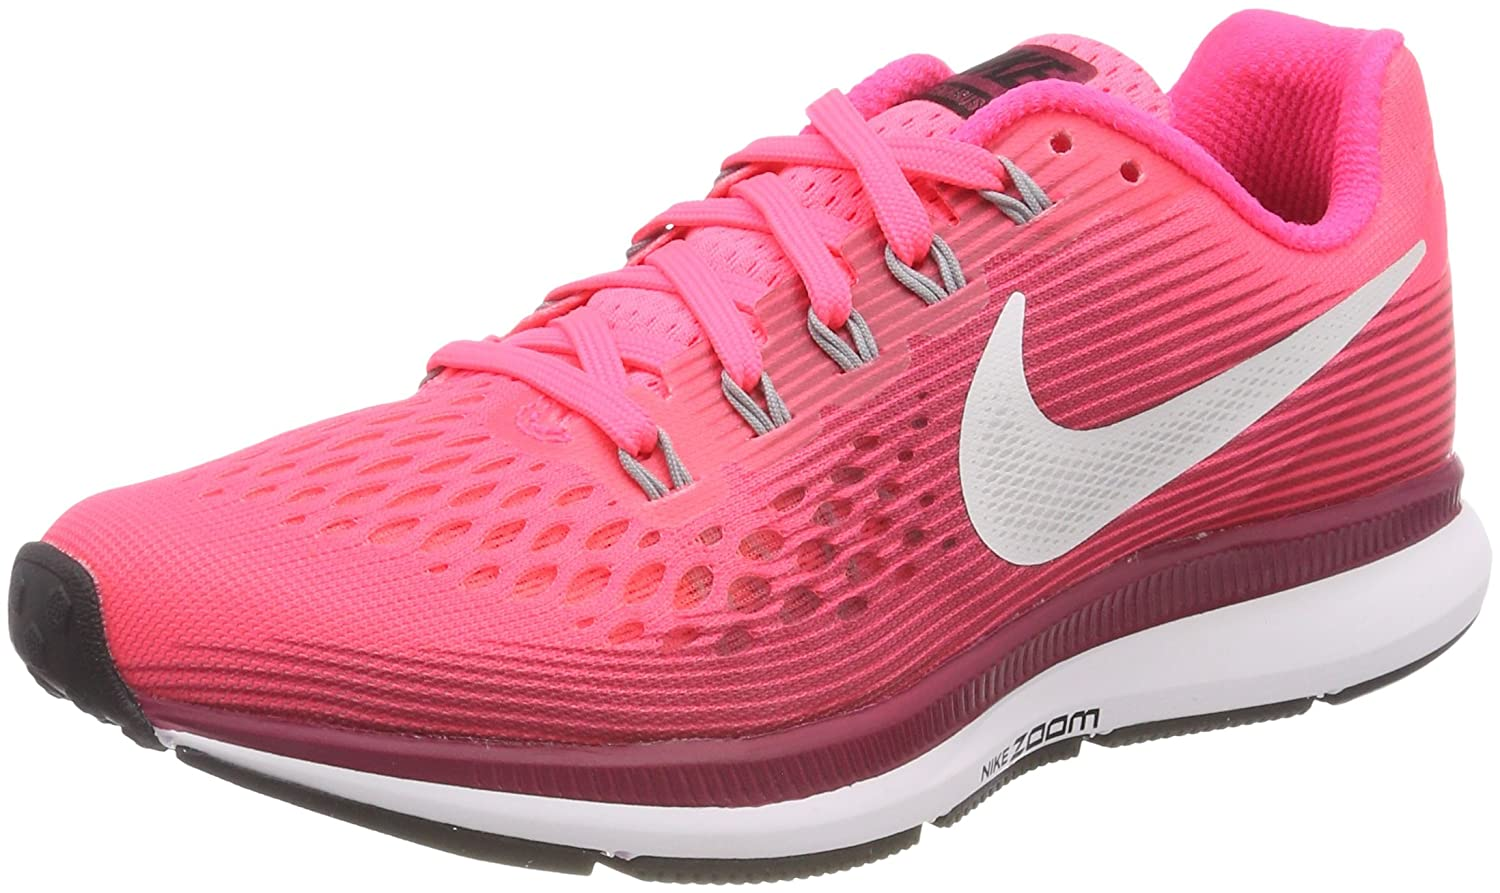 85ab7c6b06 NIKE Women's Air Zoom Pegasus 34 Running Shoe B071VKDZM6 8.5 B(M) US